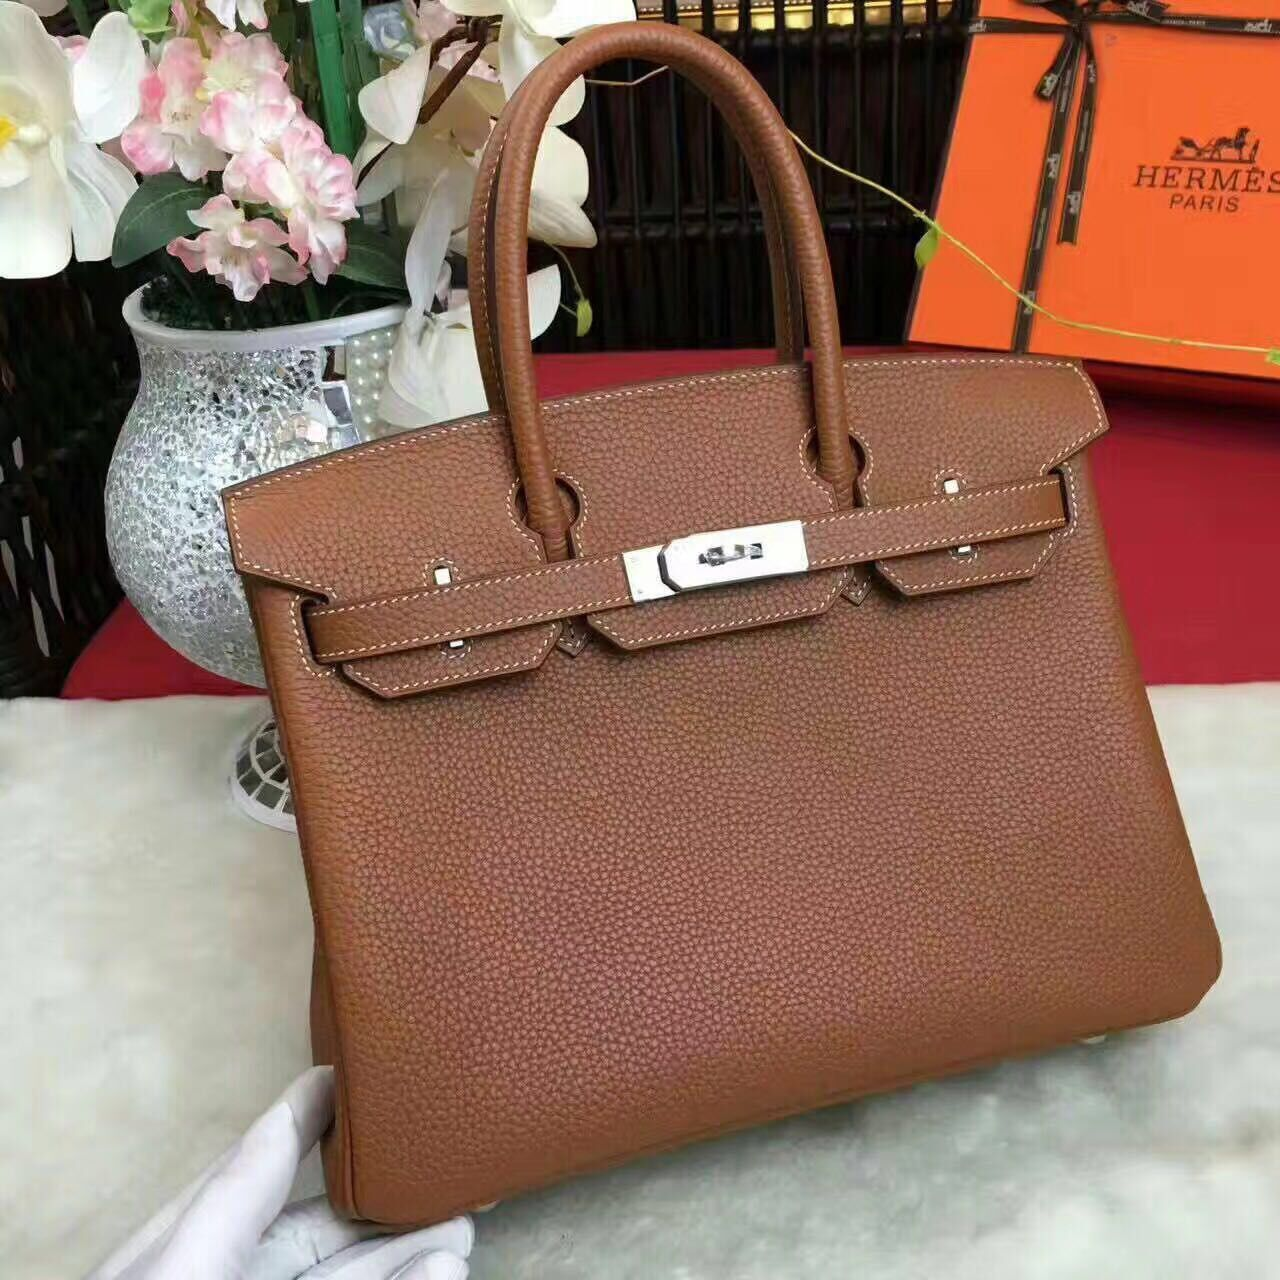 Hermes Birkin Bag Original Leather 17825 Brown